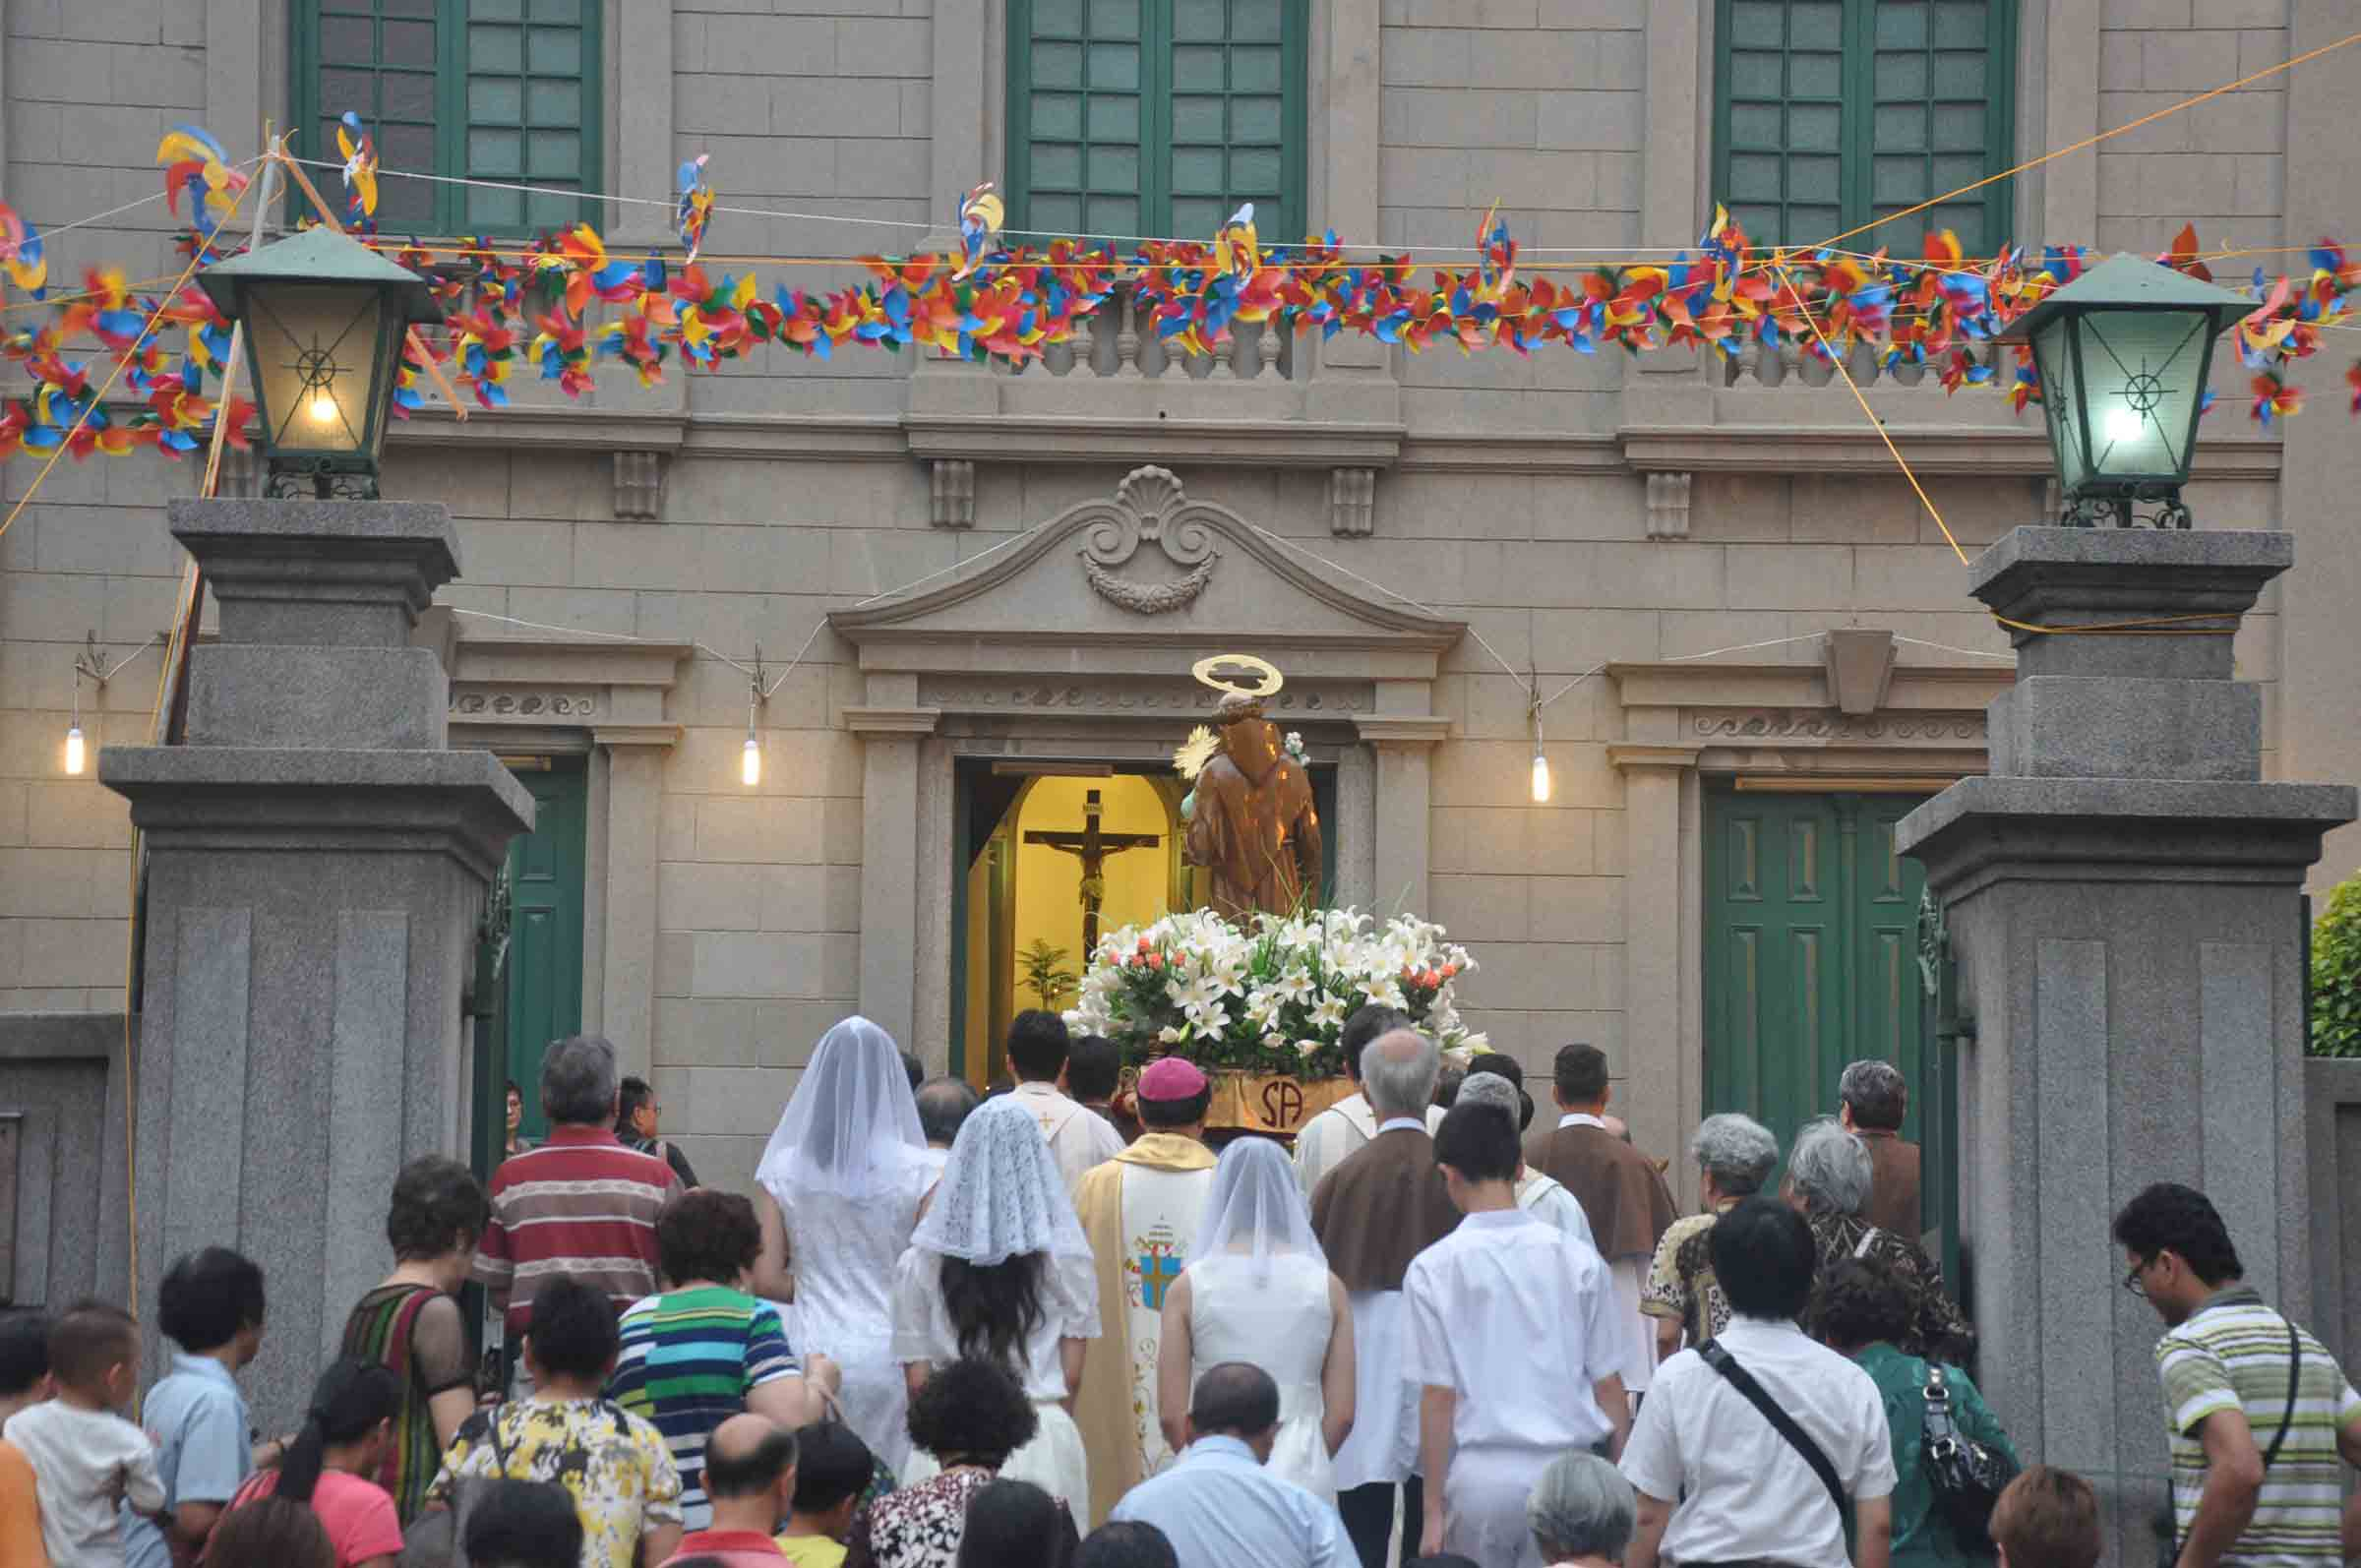 The St. Anthony Procession finishing at St. Anthony Church